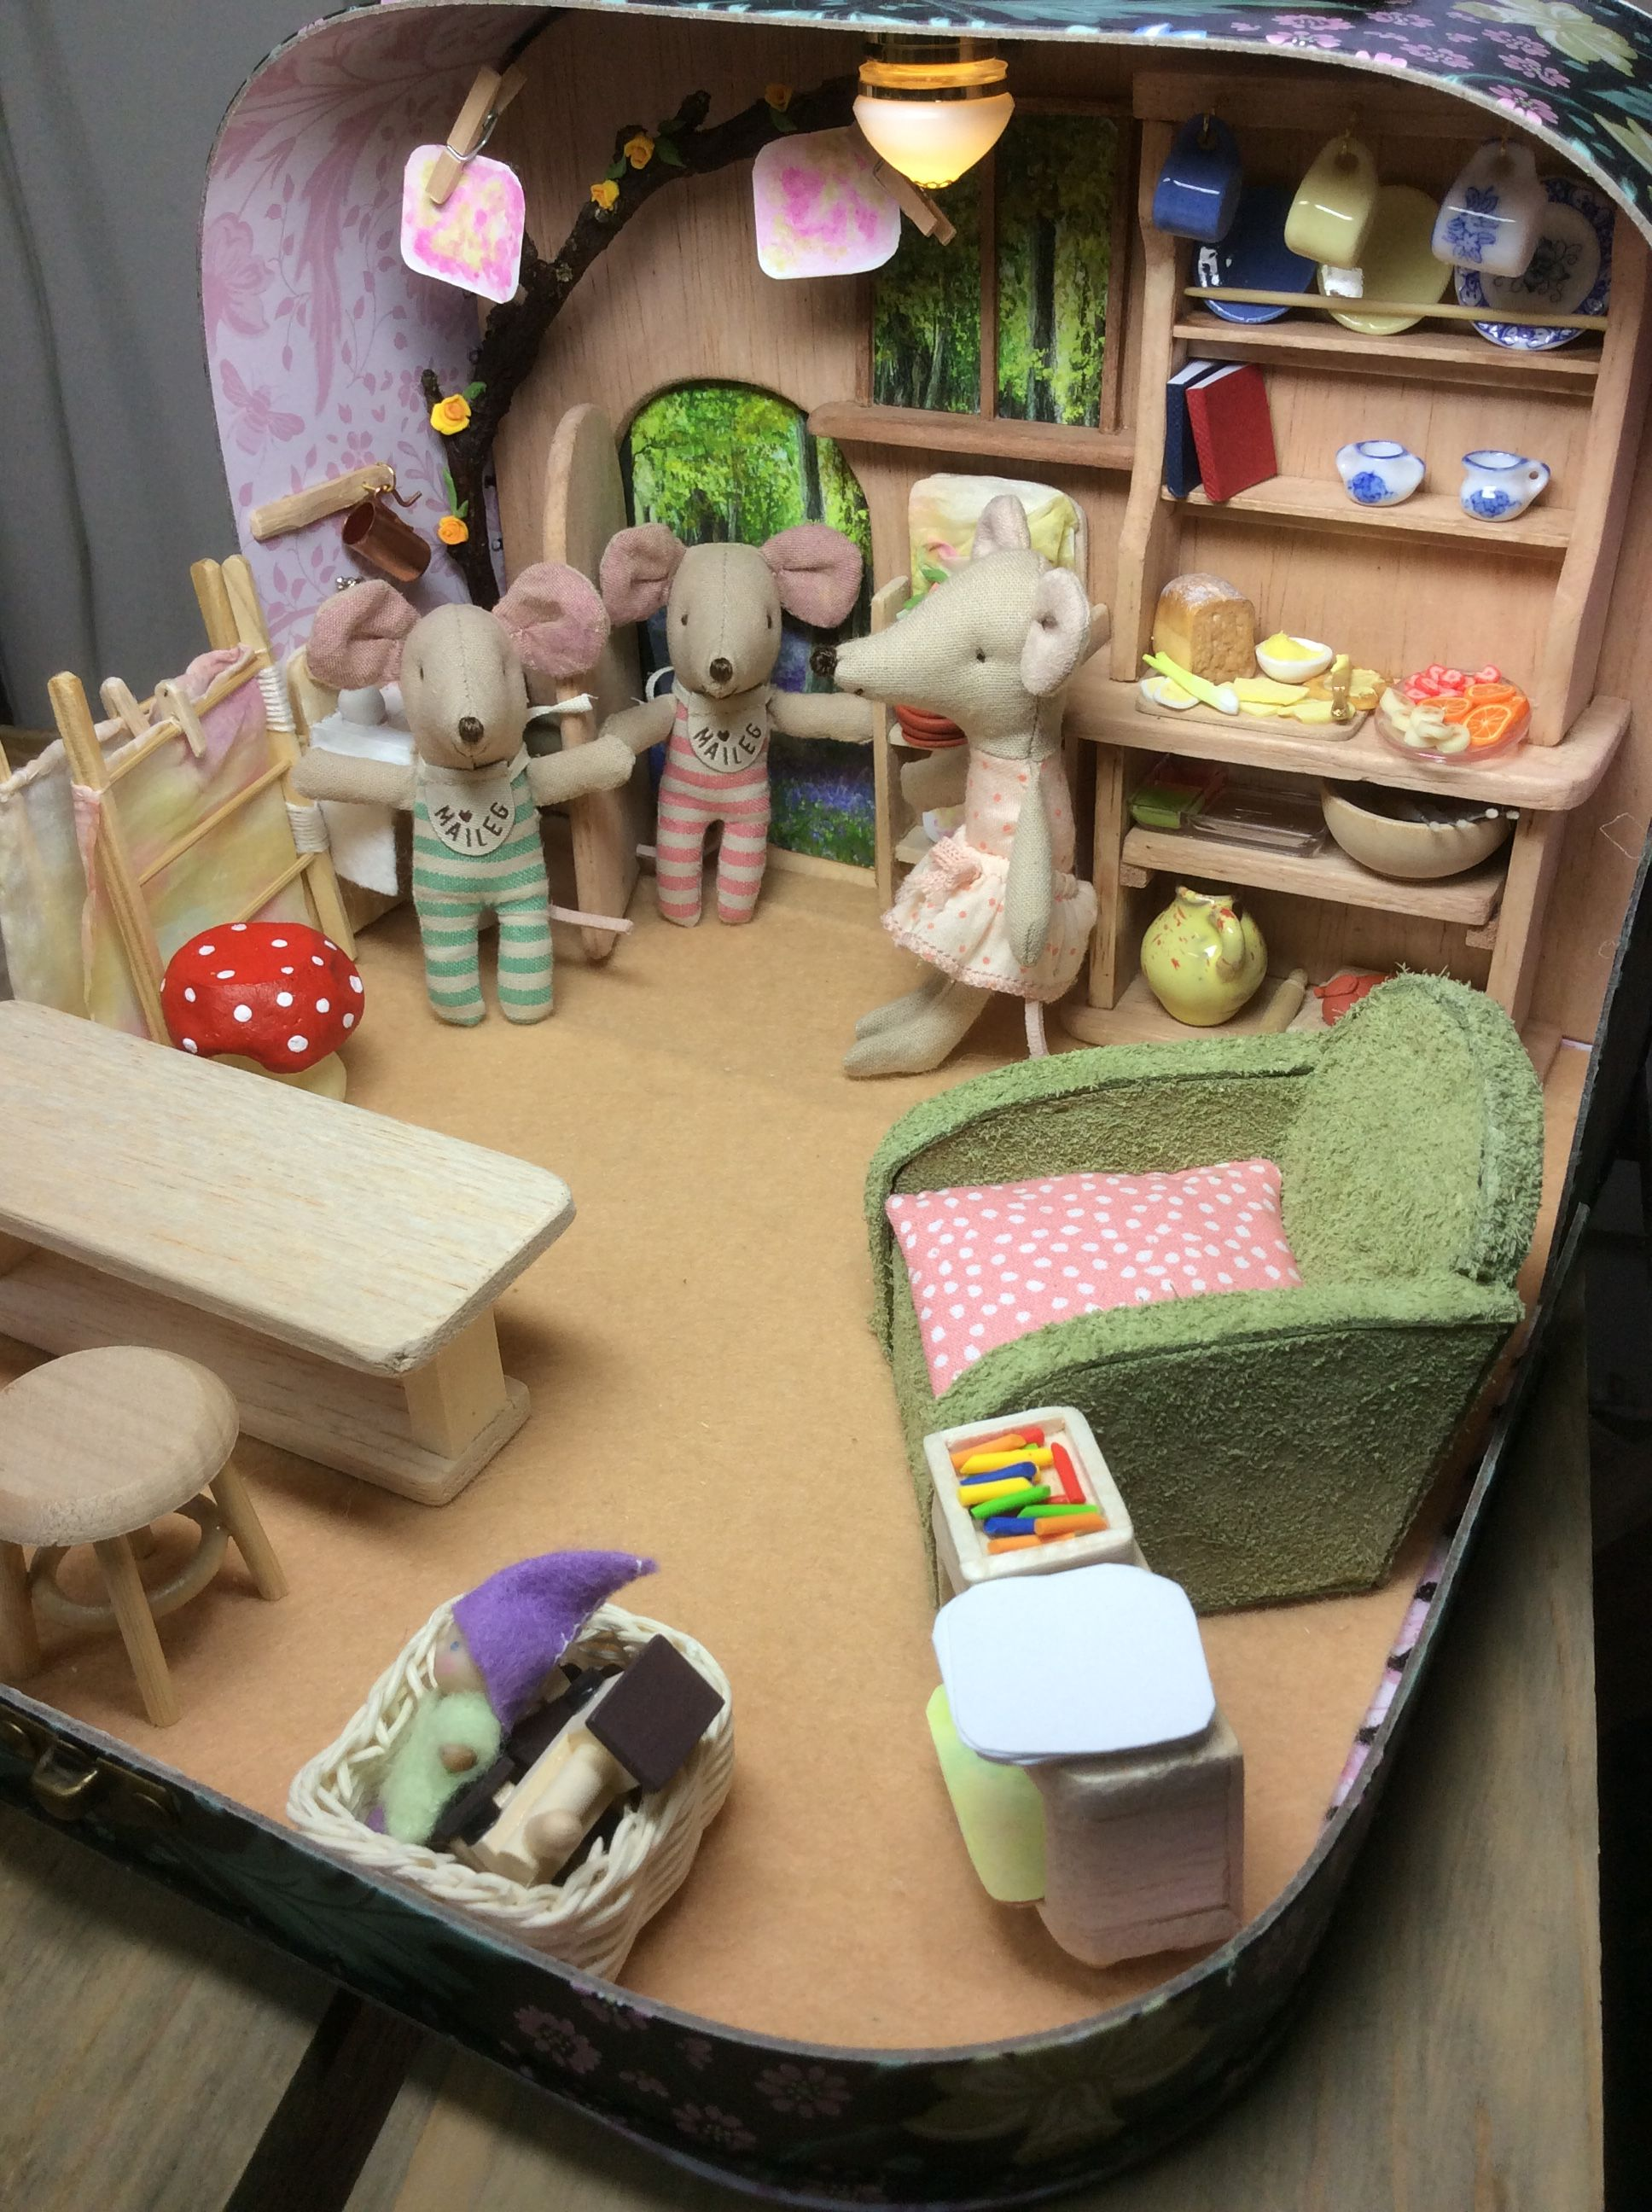 The Waldorf Mouse Kindergarten Suitcase Diorama